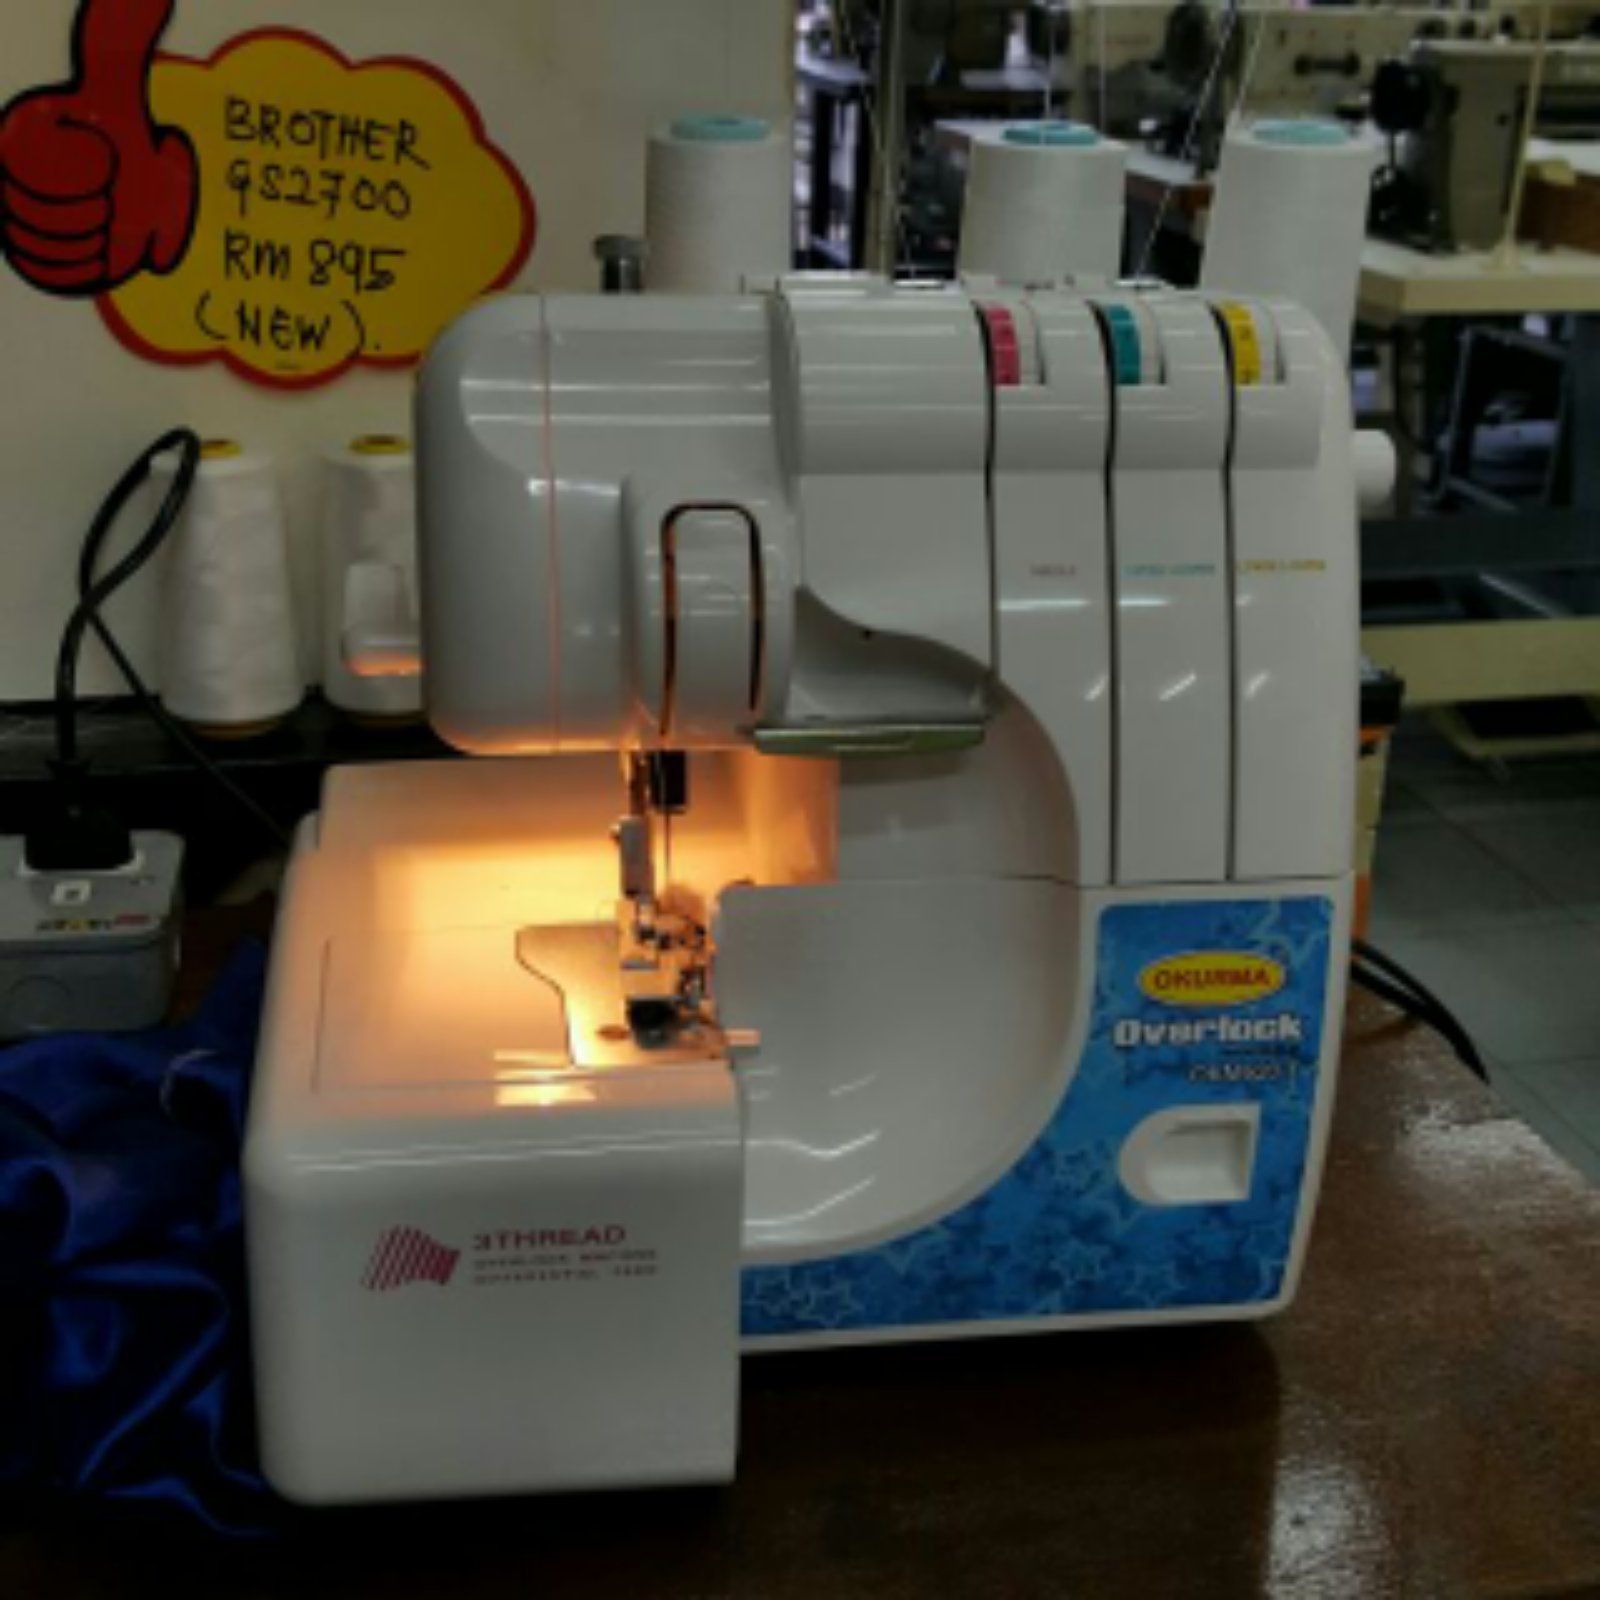 New And 2nd Portable Overlock Sewing Machine